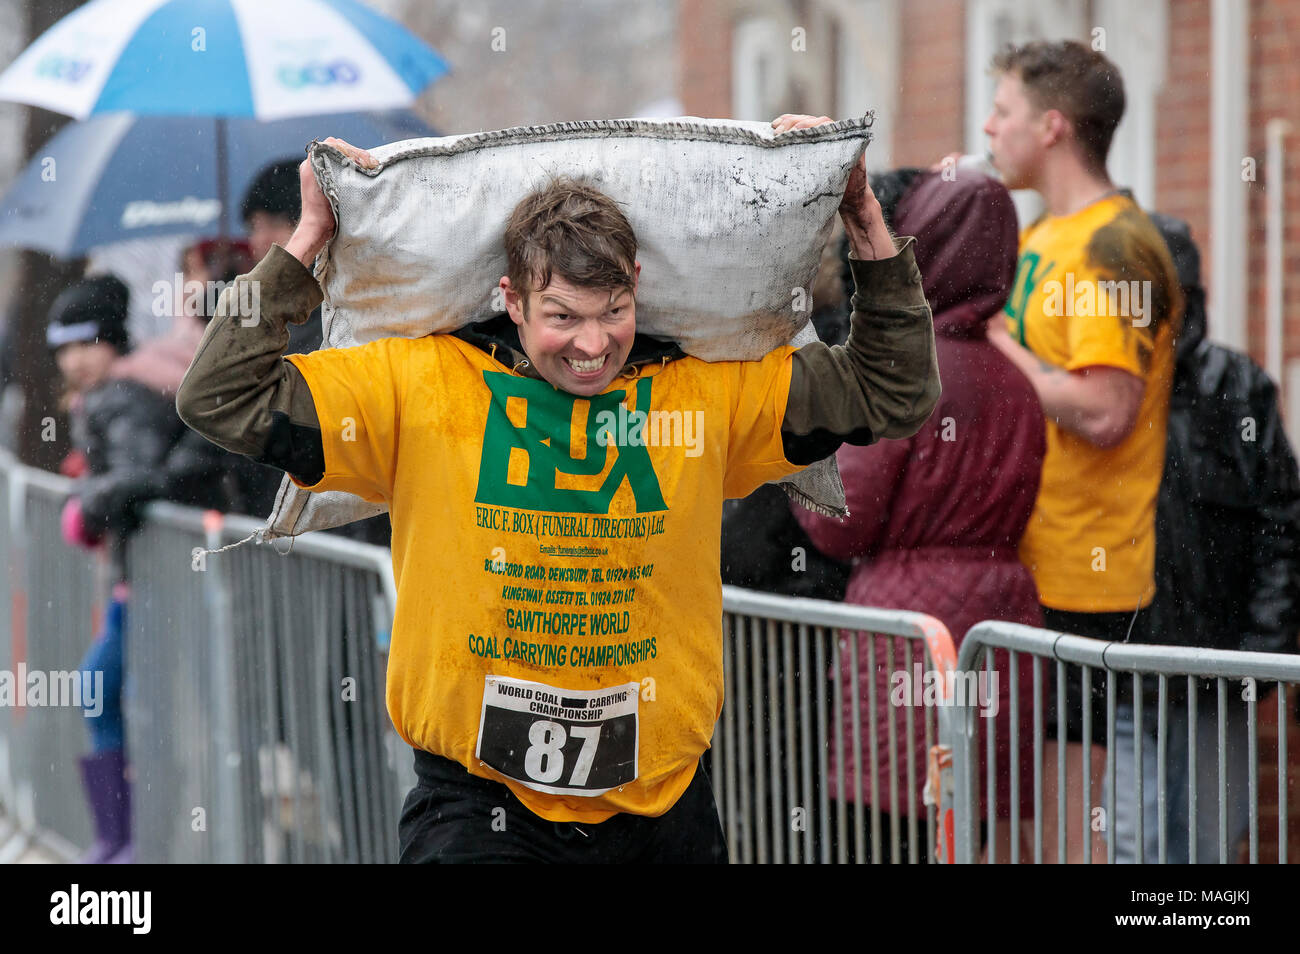 Gawthorpe, West Yorkshire, UK. 2nd April 2018. A competitor digging deep as he nears the finish line. The World Coal Carrying Championships take place every year on Easter Monday, when competitors, carrying sacks of coal, race over a 1012 m uphill course through the former mining village near Wakefield. Male competitors carry 50kg sacks and females 20kg. Women's winner was Danielle Sidebottom, Men's winner was Andrew Corrigan. © Ian Wray/Alamy live news - Stock Image